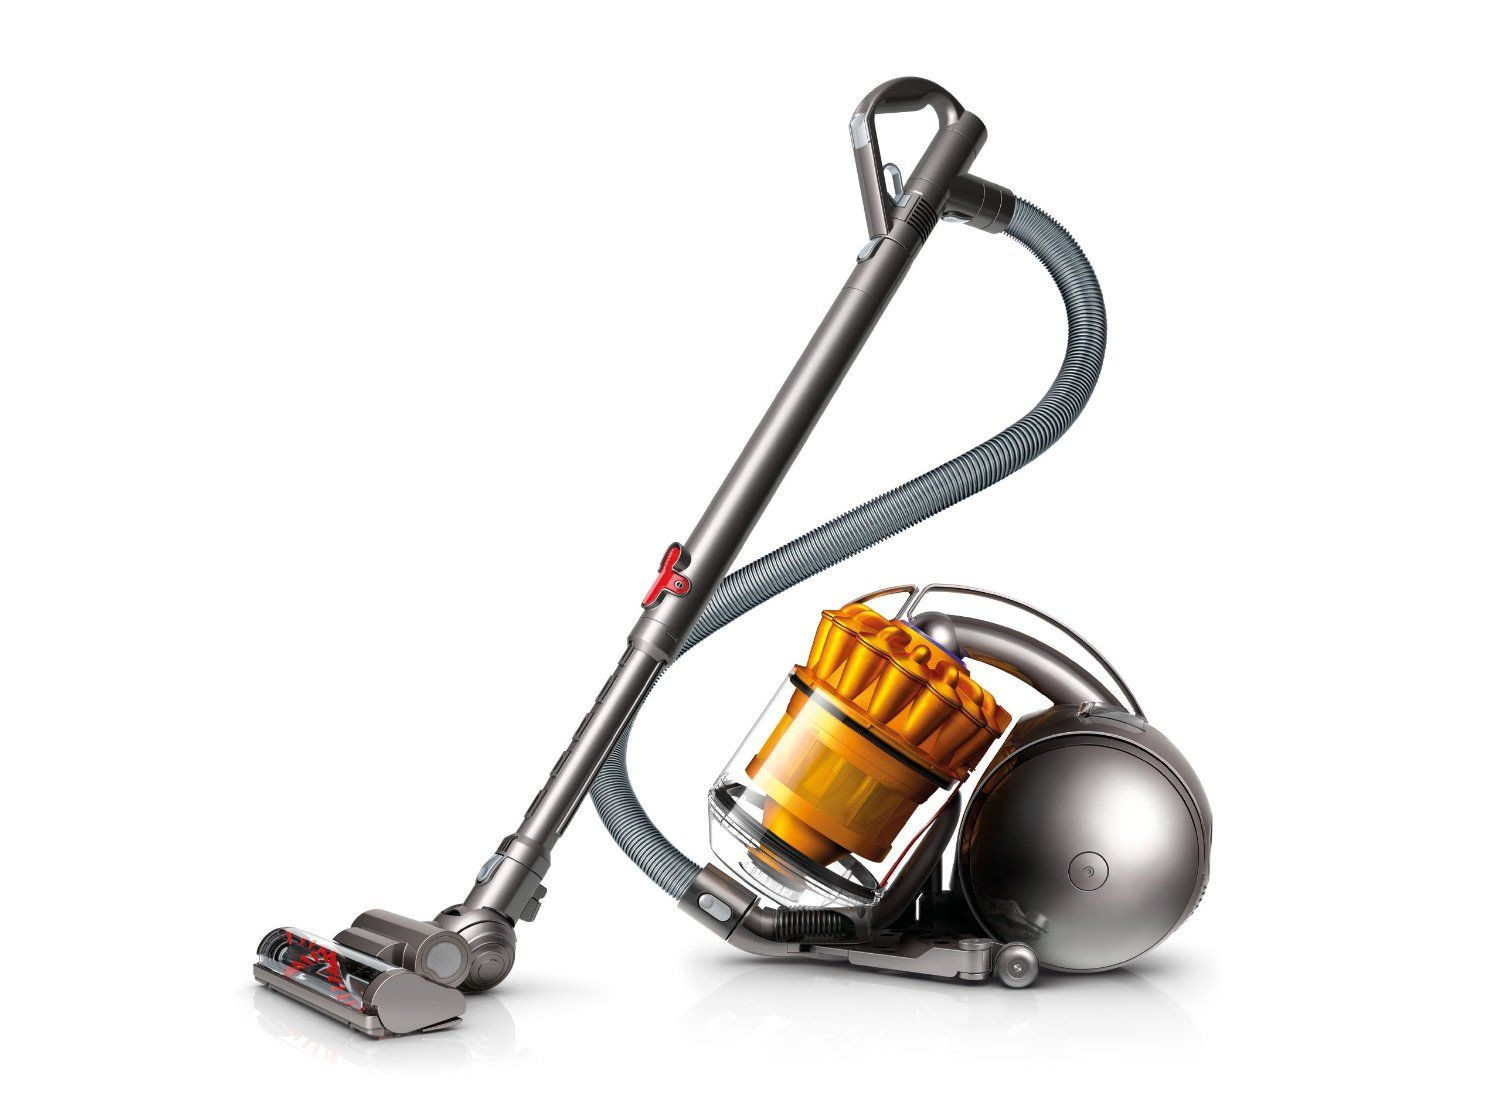 Arresting Dyson Ball Multi Canister Vacuum Dyson Vacuum Warranty Costco Vacuum Cleaners Upright Costco Vacuum Cleaners Shark houzz-03 Costco Vacuum Cleaners